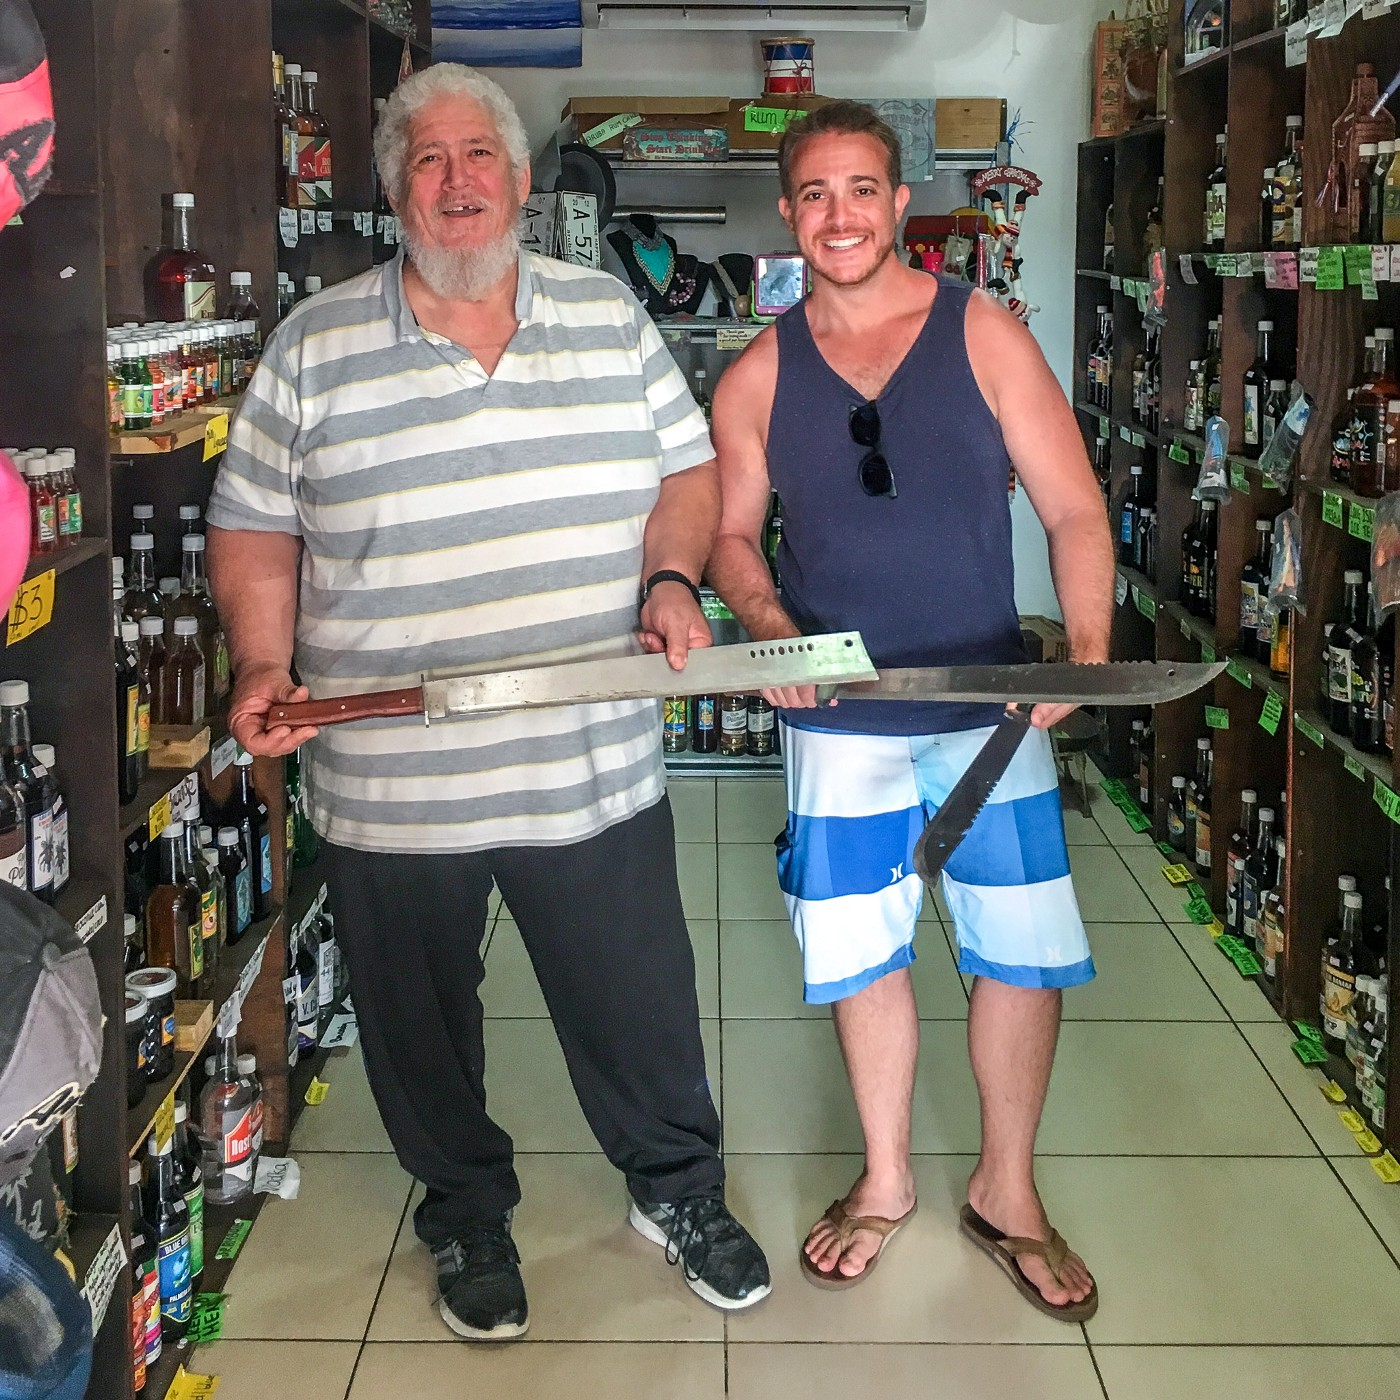 The Arubian Taste: Aruba's legendary rum shop known for creative mixology and owners that exude generosity of spirit.